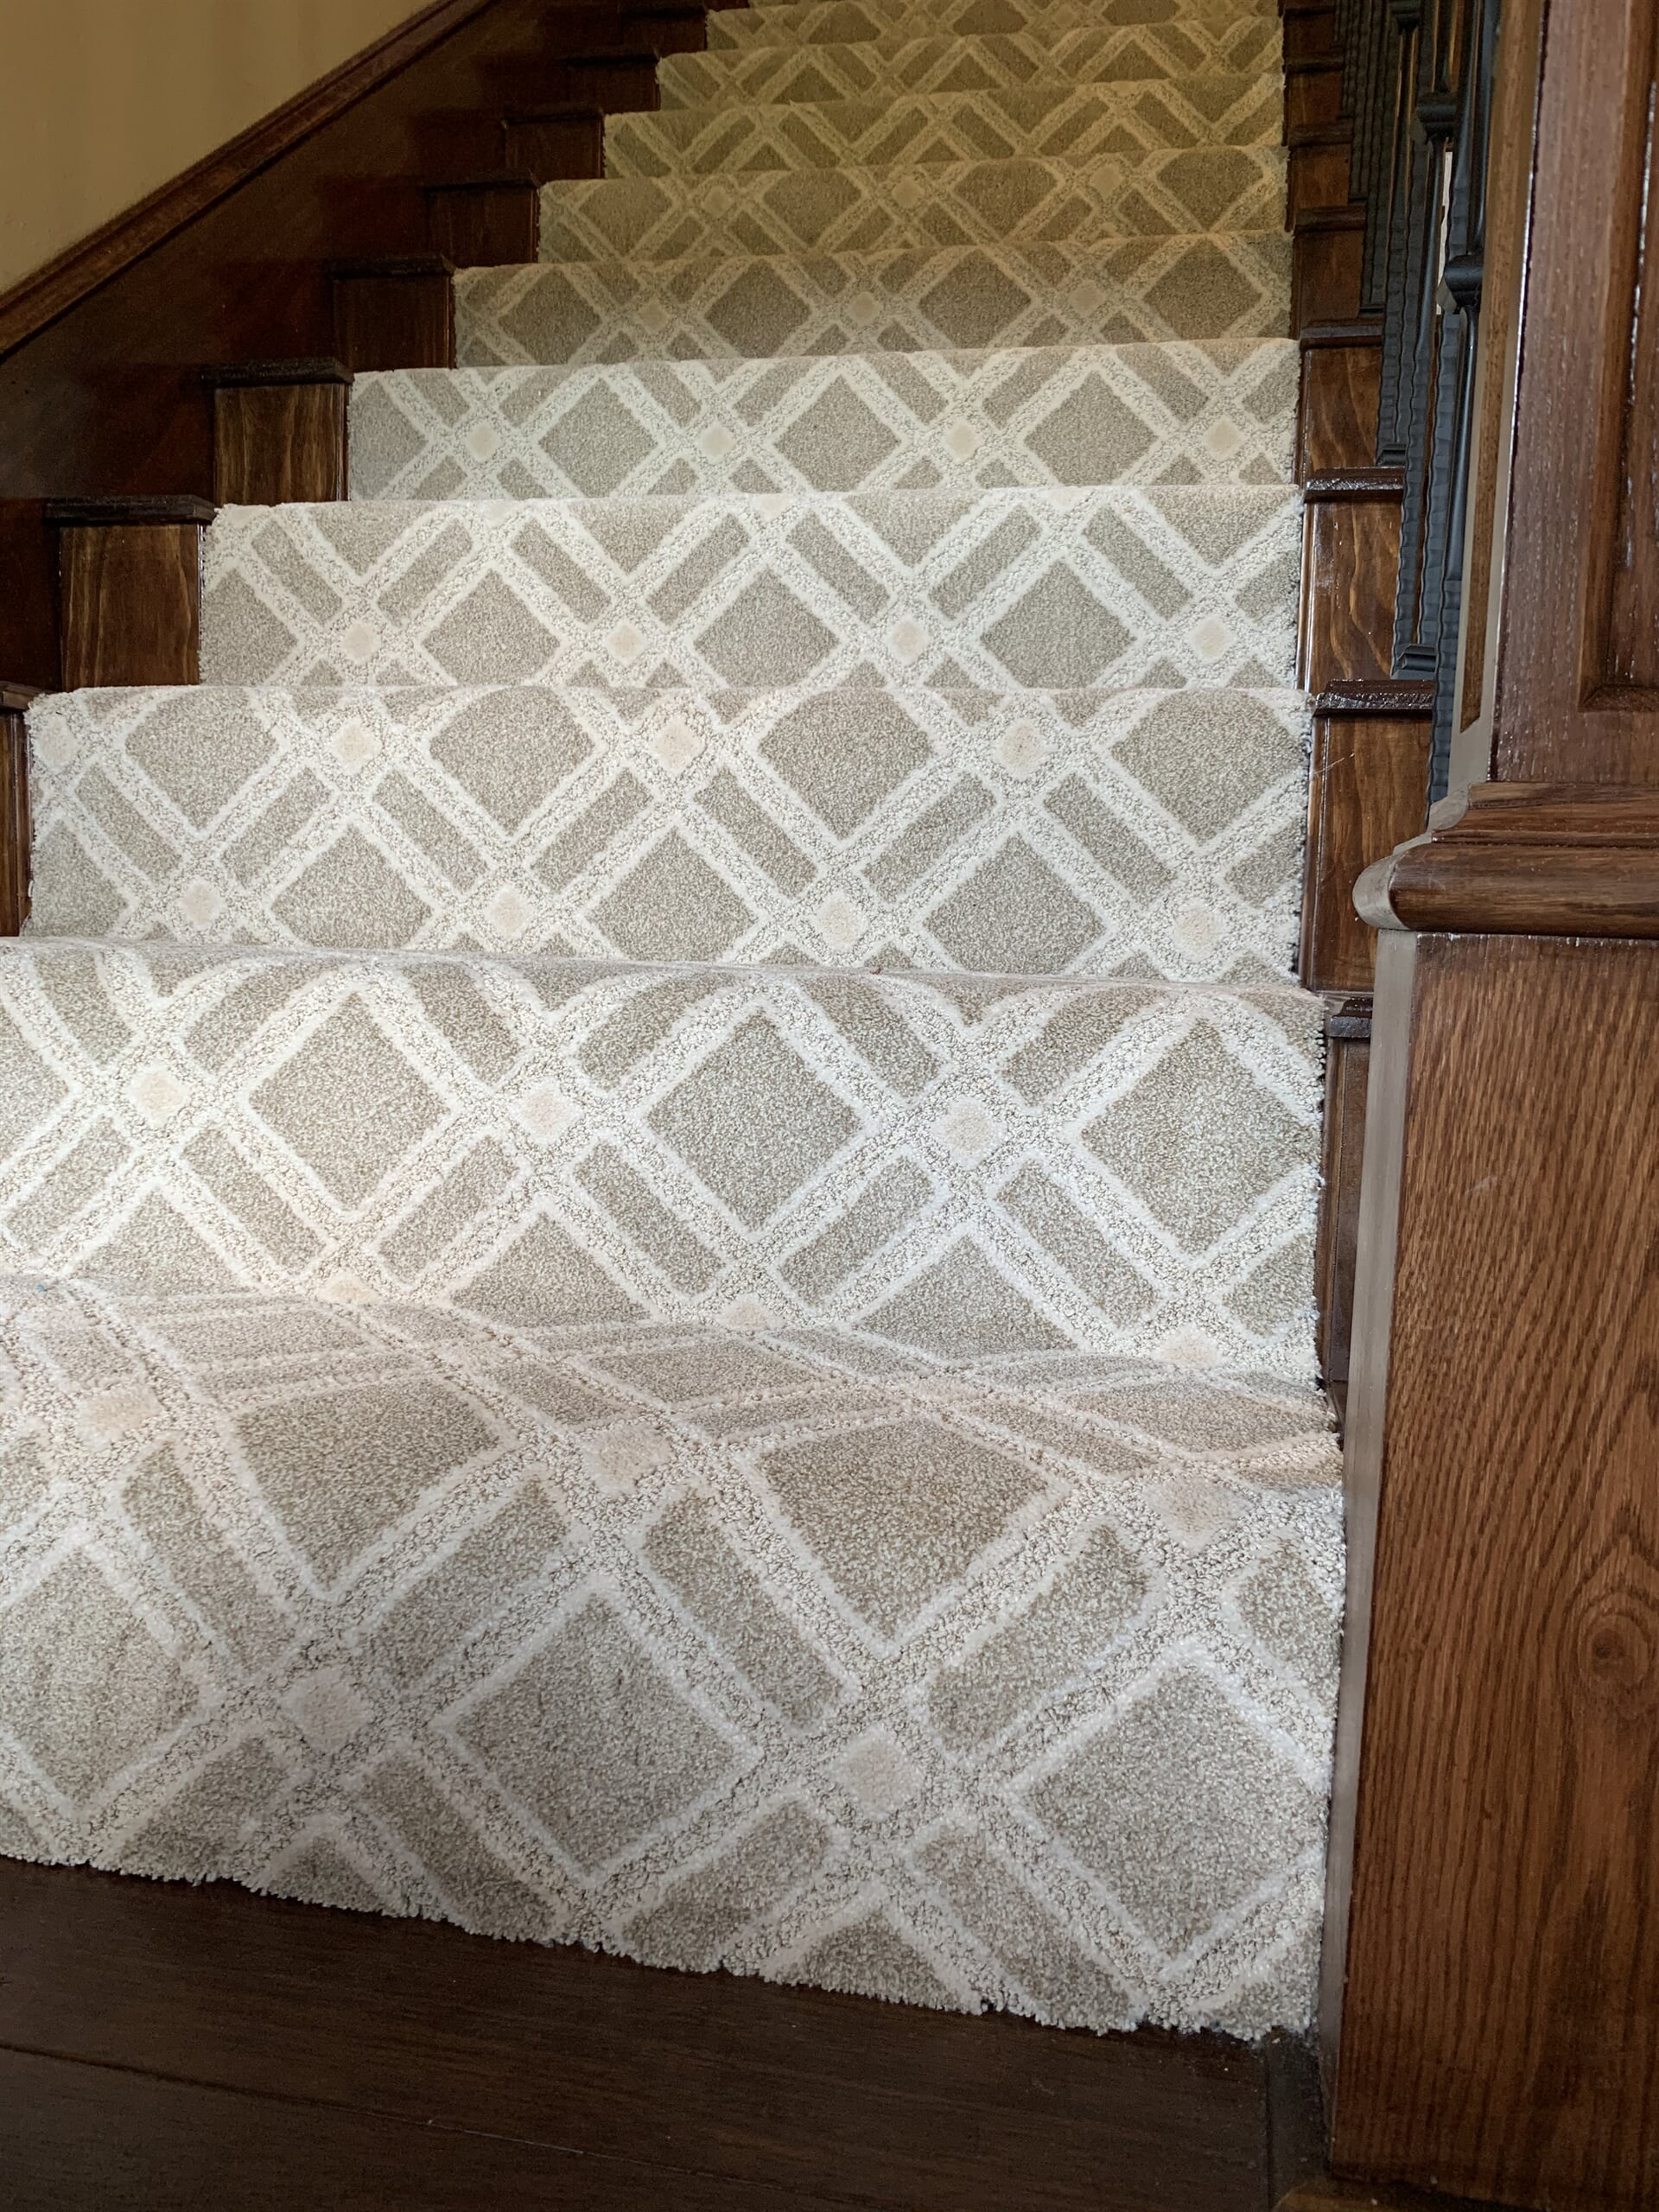 Patterned stair carpet in Beaumont, TX from Odile's Fine Flooring & Design